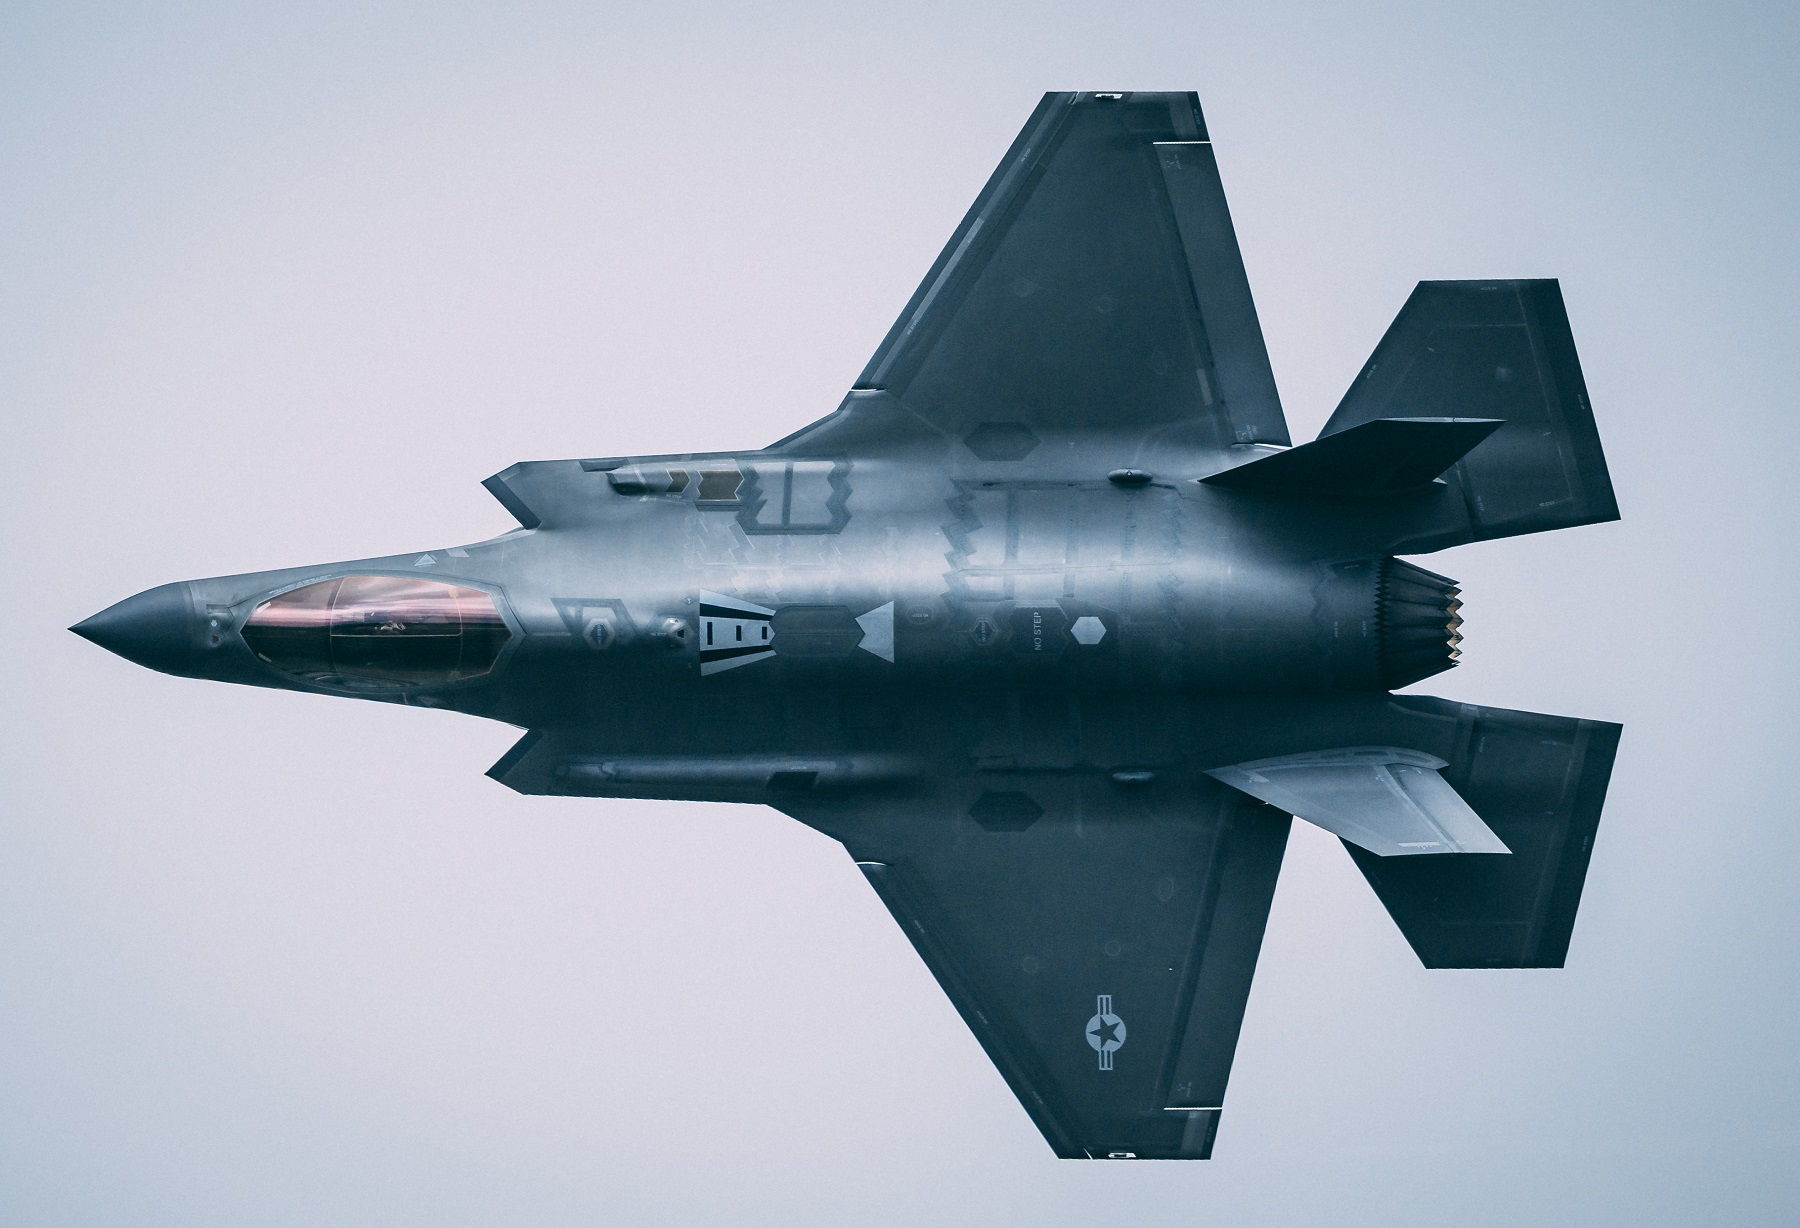 The Video the Air Force Wants Everyone To See: An F-35 in 'Beast Mode'